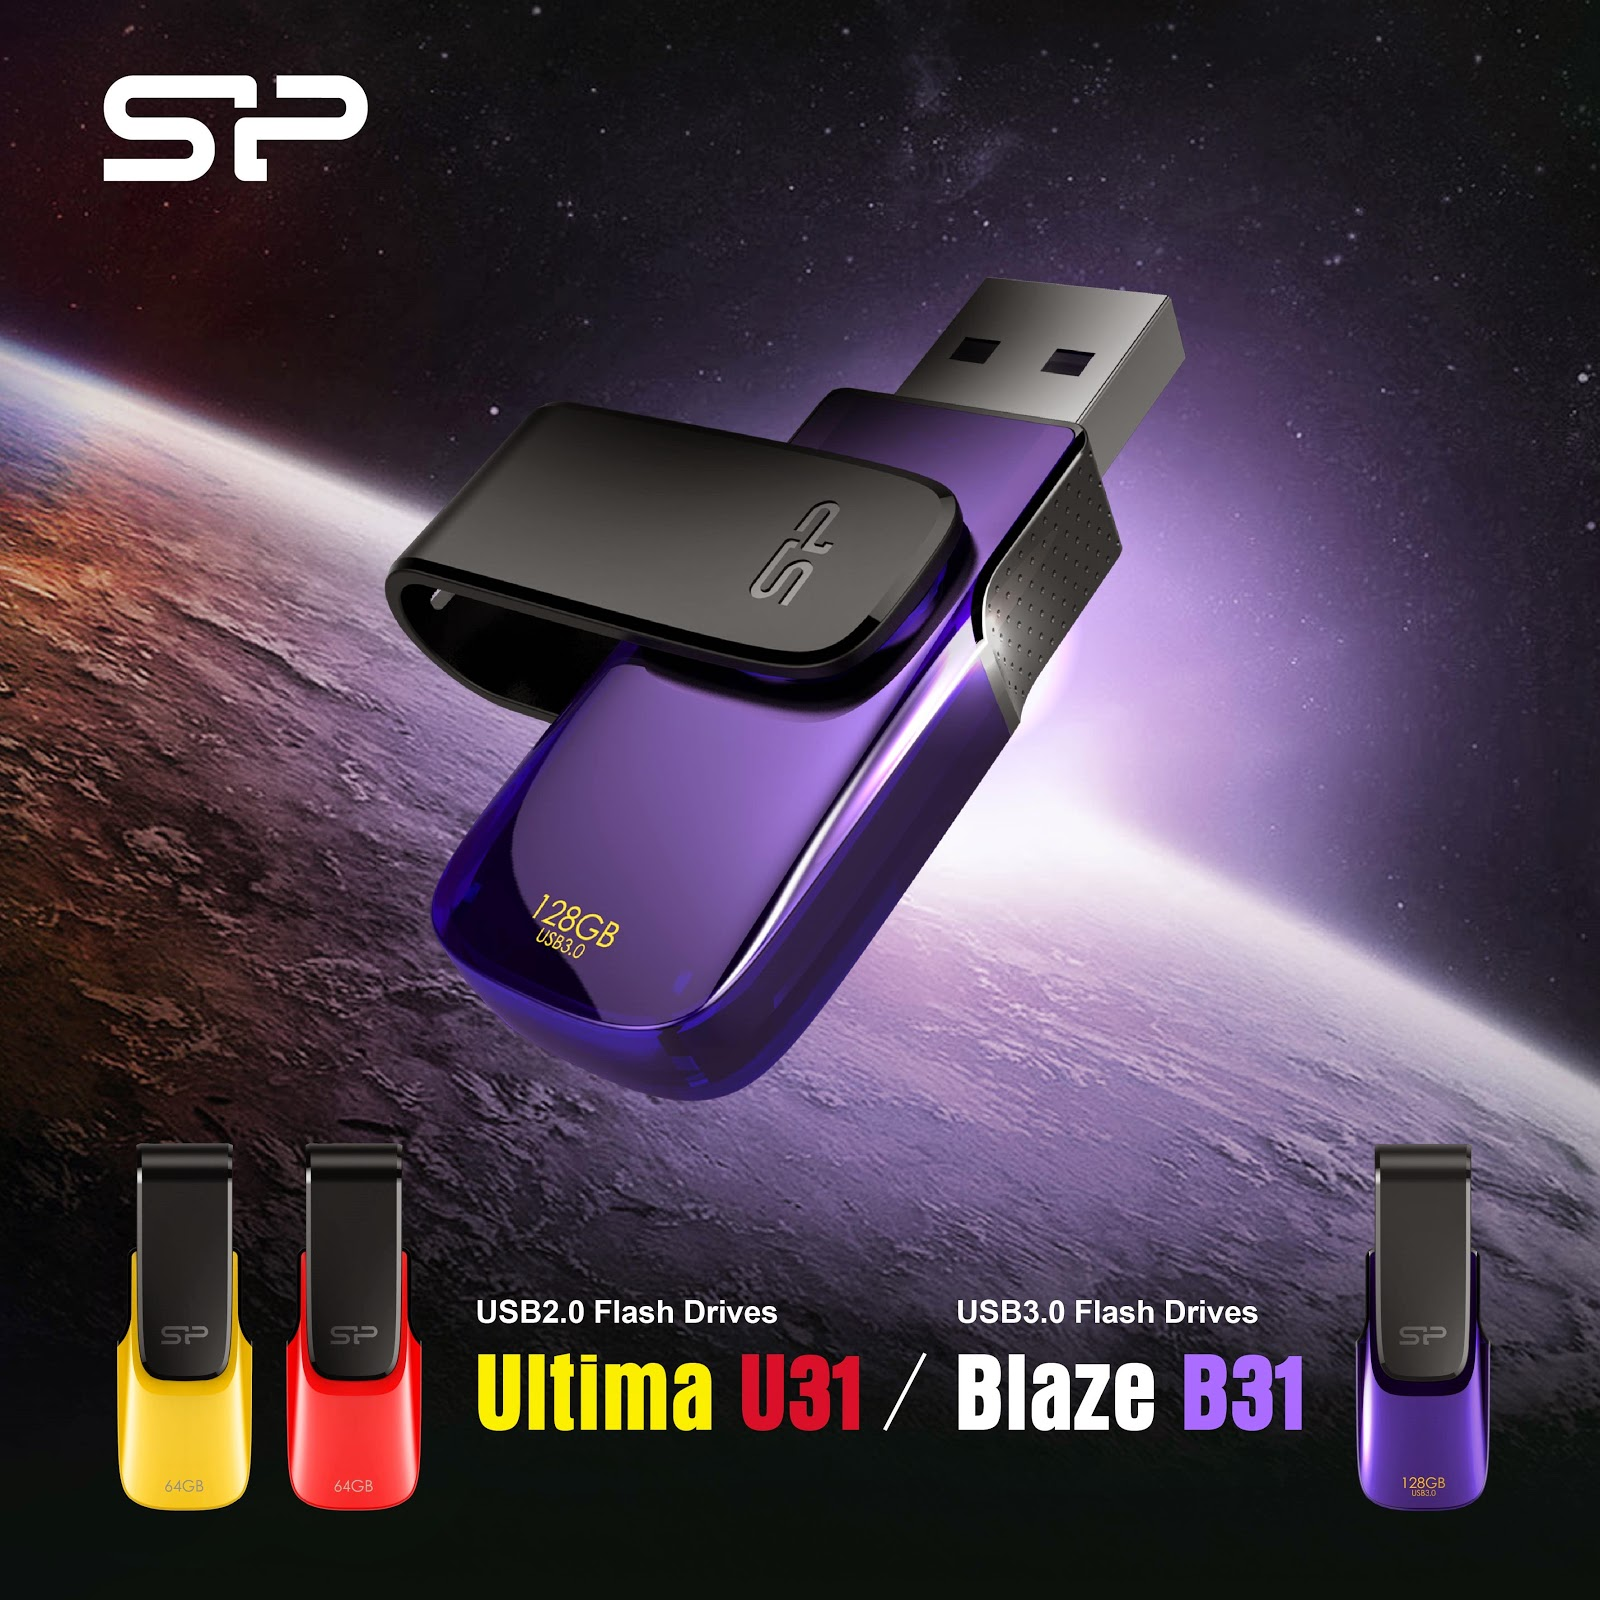 SP Ultima U31 and Blaze B31 Swivel USB flash drives